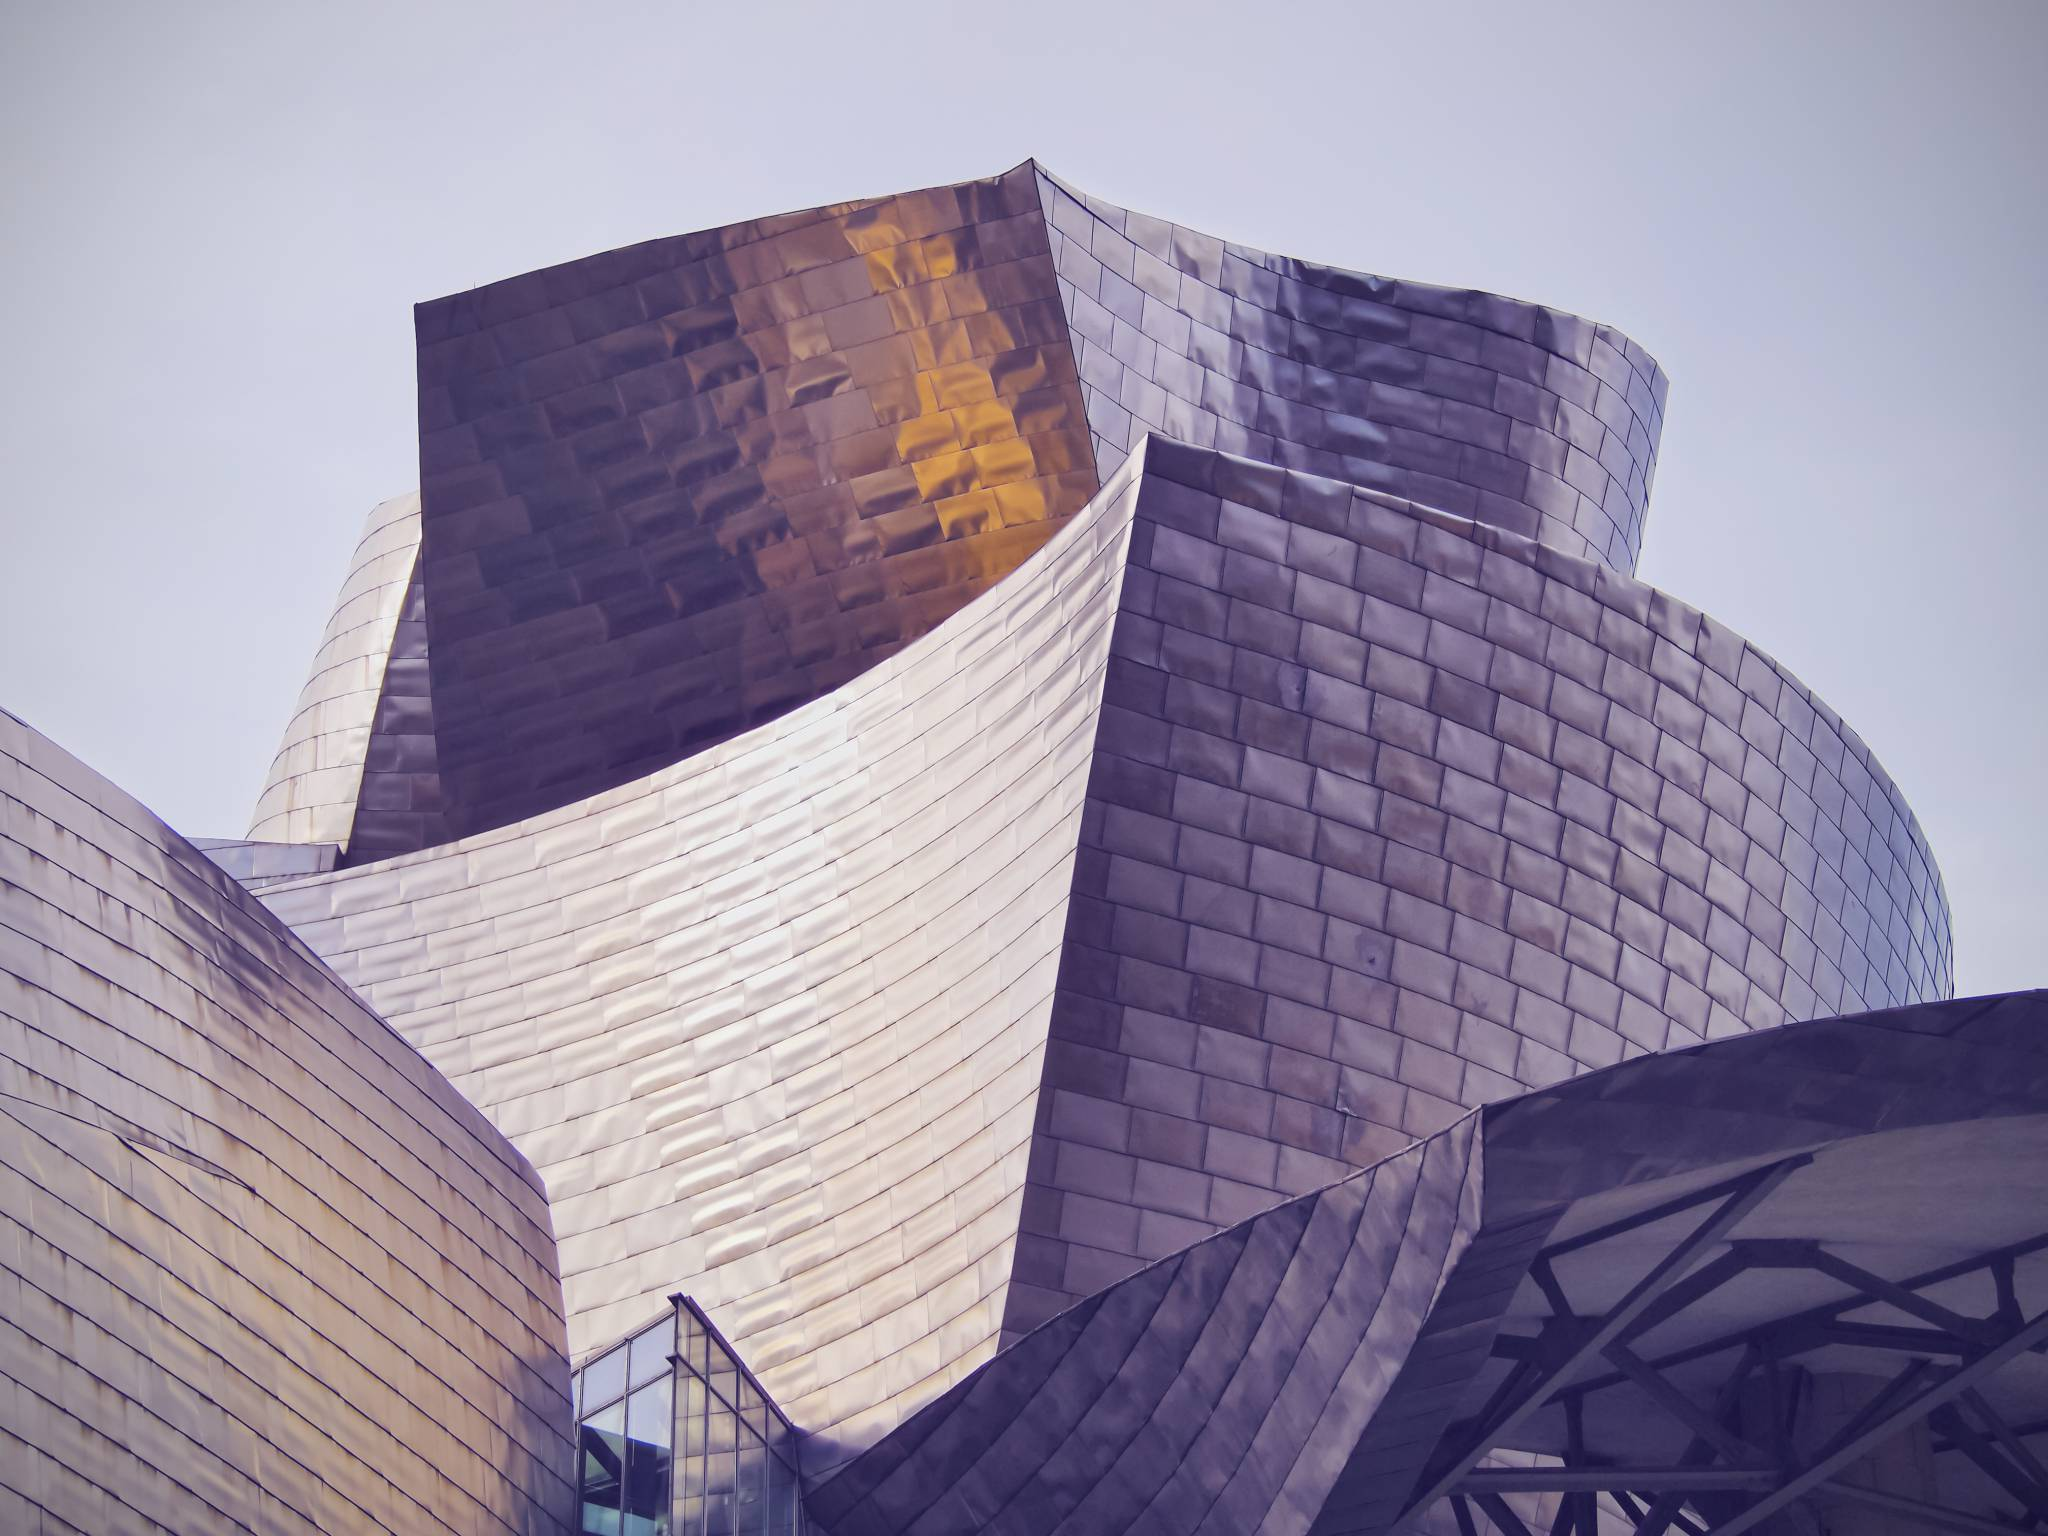 Visit Bilbao with eTips Travel Guide